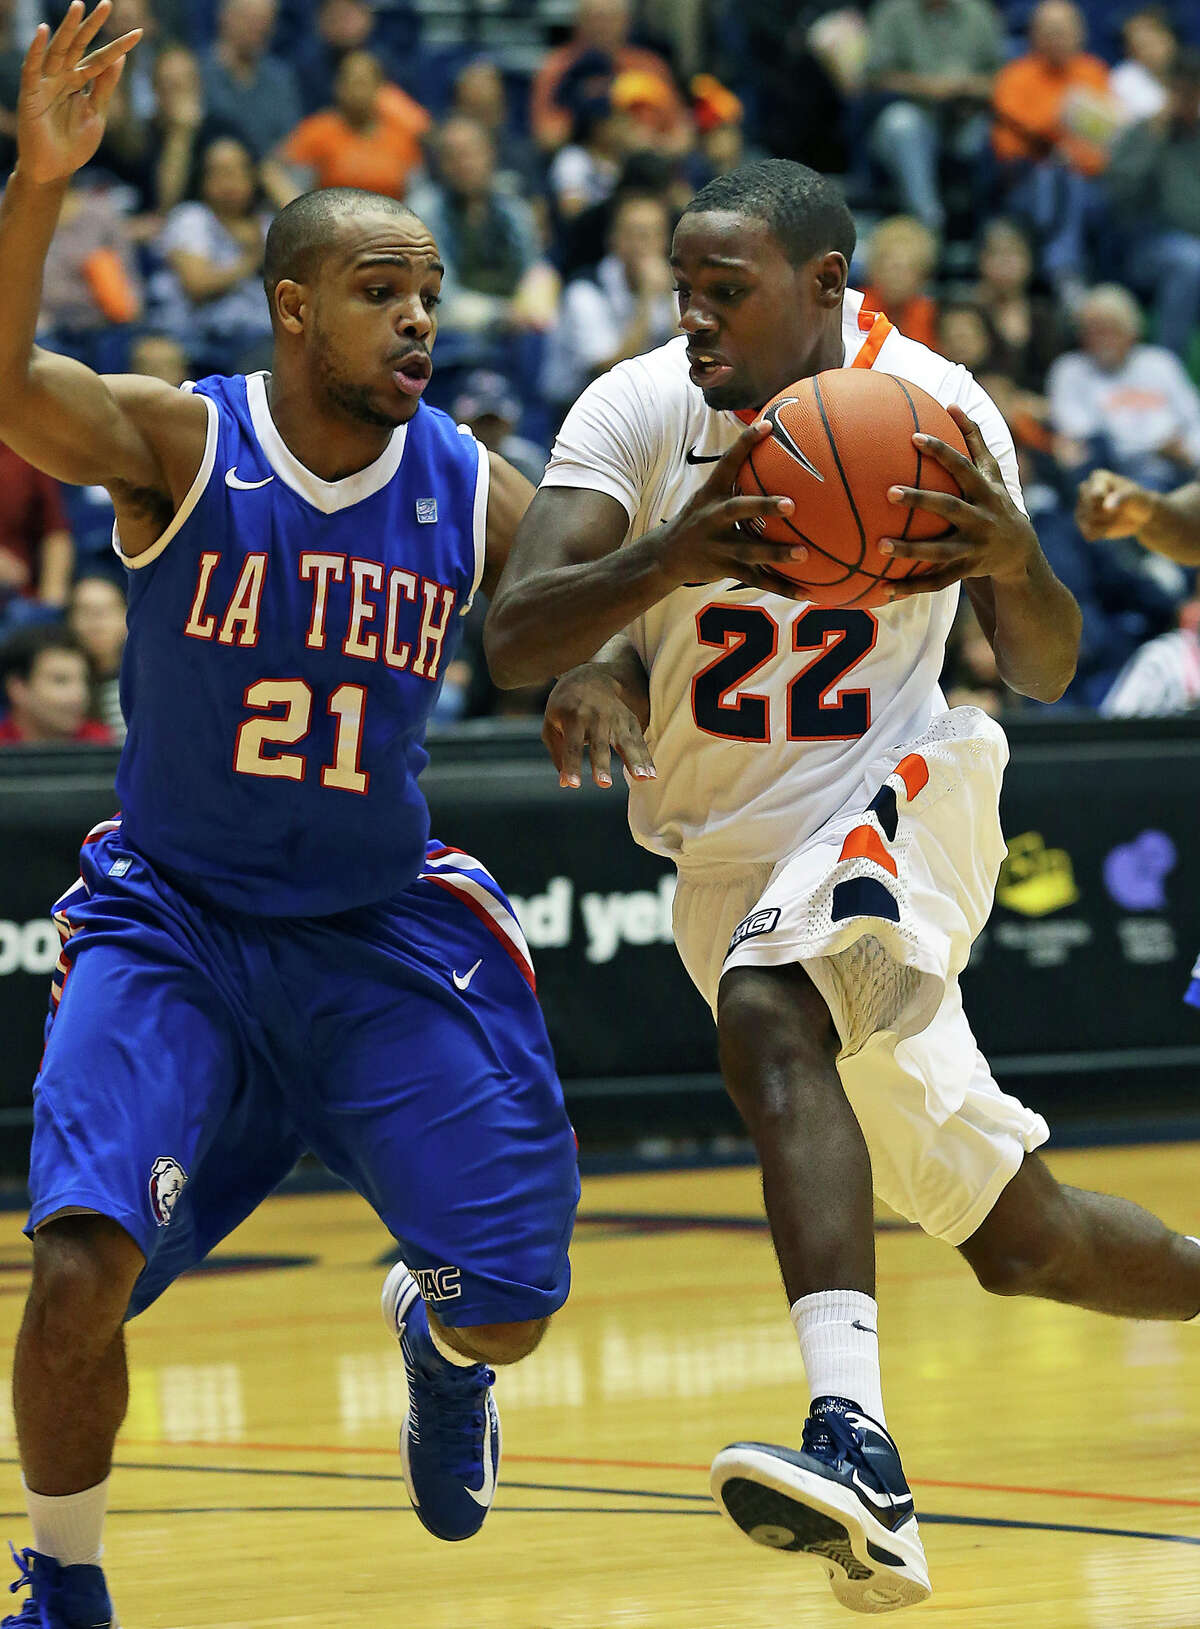 Roadrunner guard Kannon Burrage tries to get past Kenyon McNeail as UTSA plays Louisiana Tech in mens' basketball at the UTSA Convocation Center on January 12, 2013.